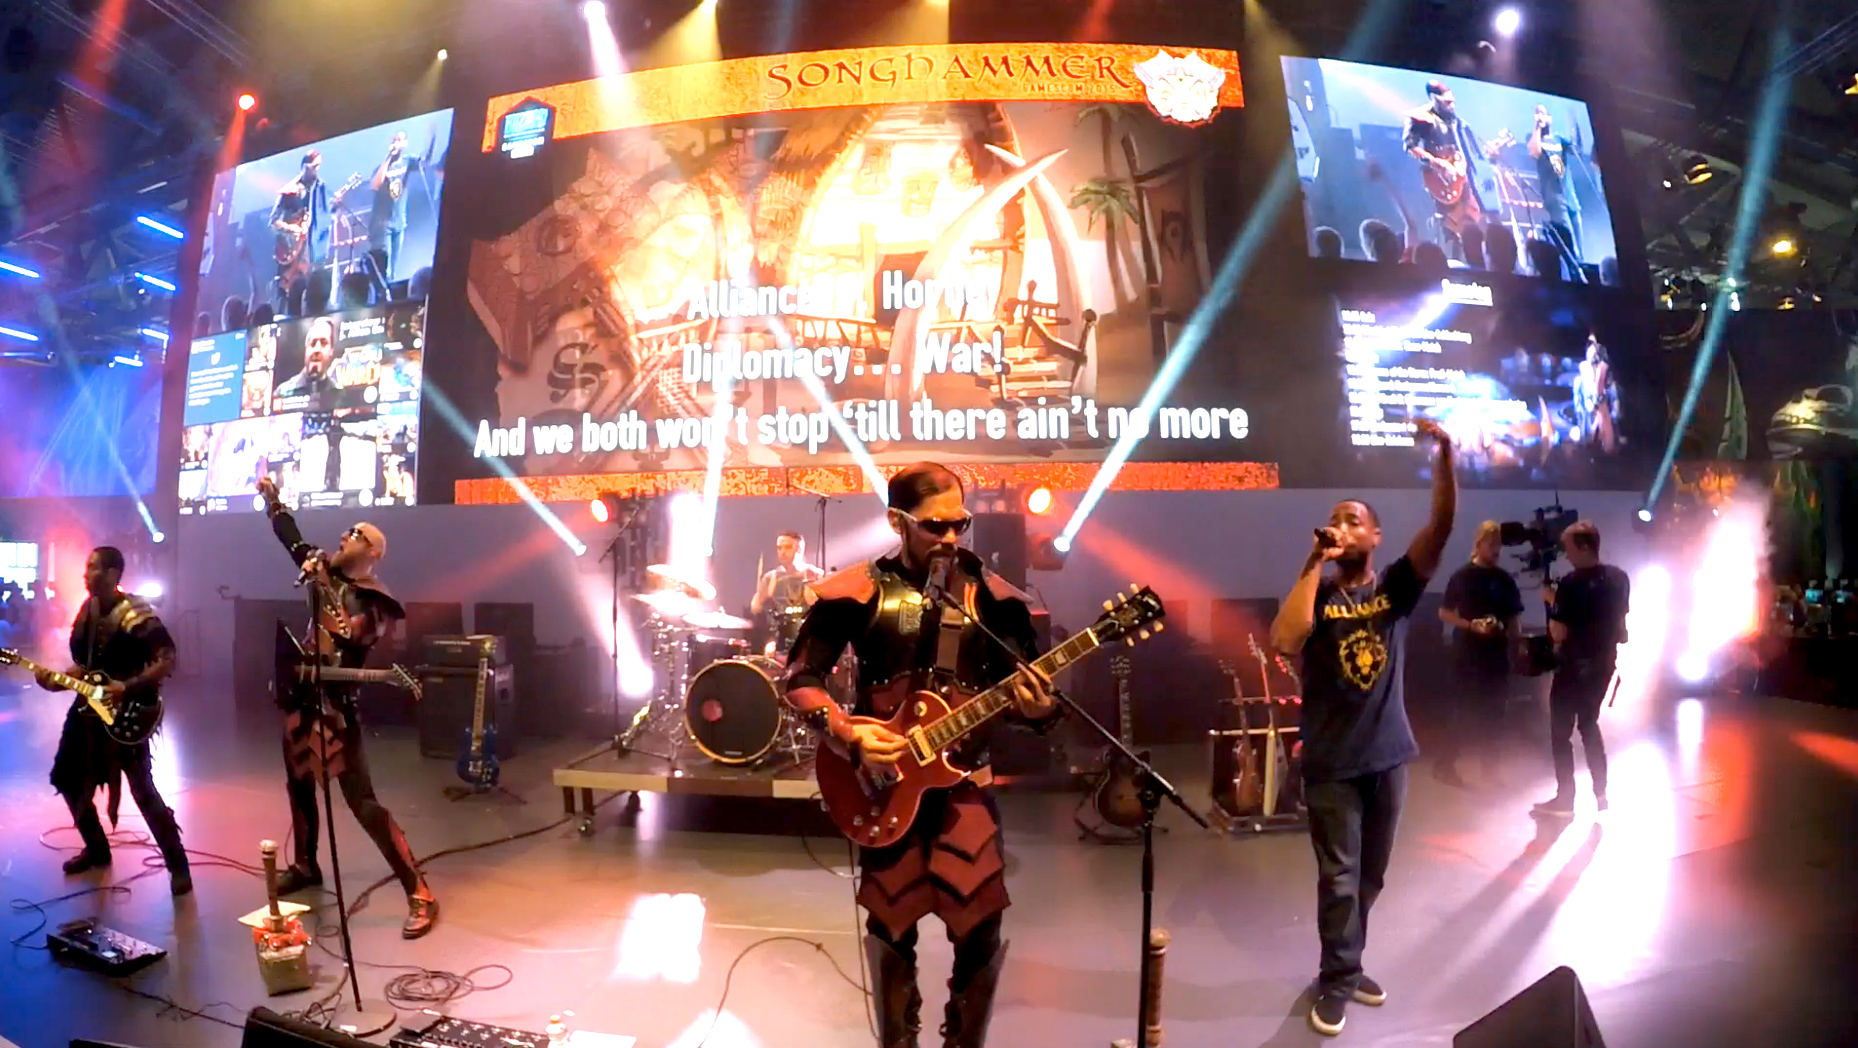 Blizzard Booth + Songhammer Live a Gamescom 2015!